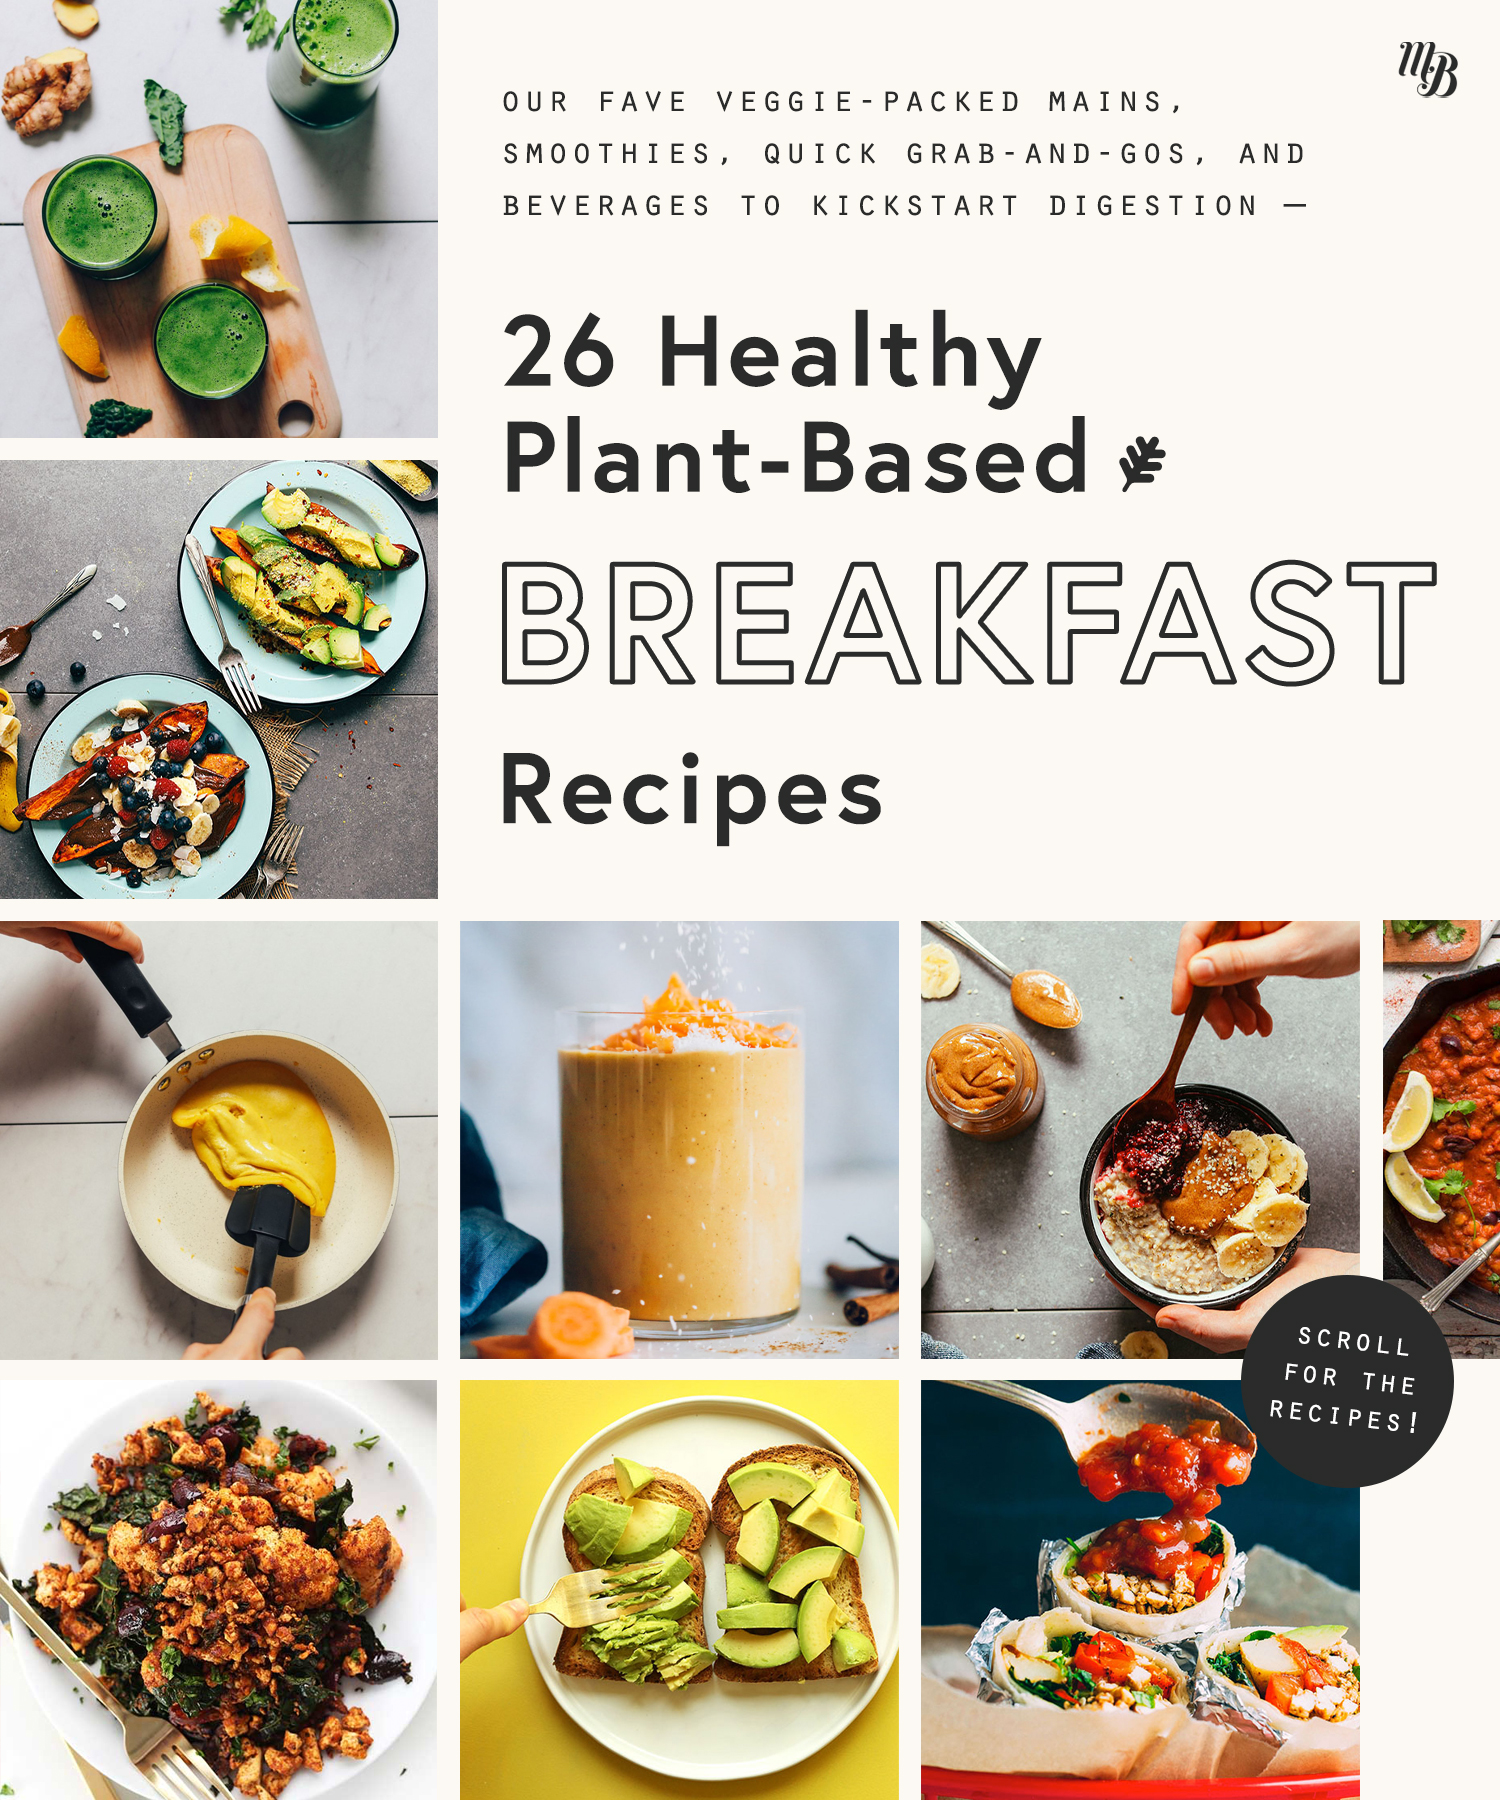 Green juice, roasted sweet potatoes, vegan scrambled eggs, and other healthy plant-based breakfast recipes